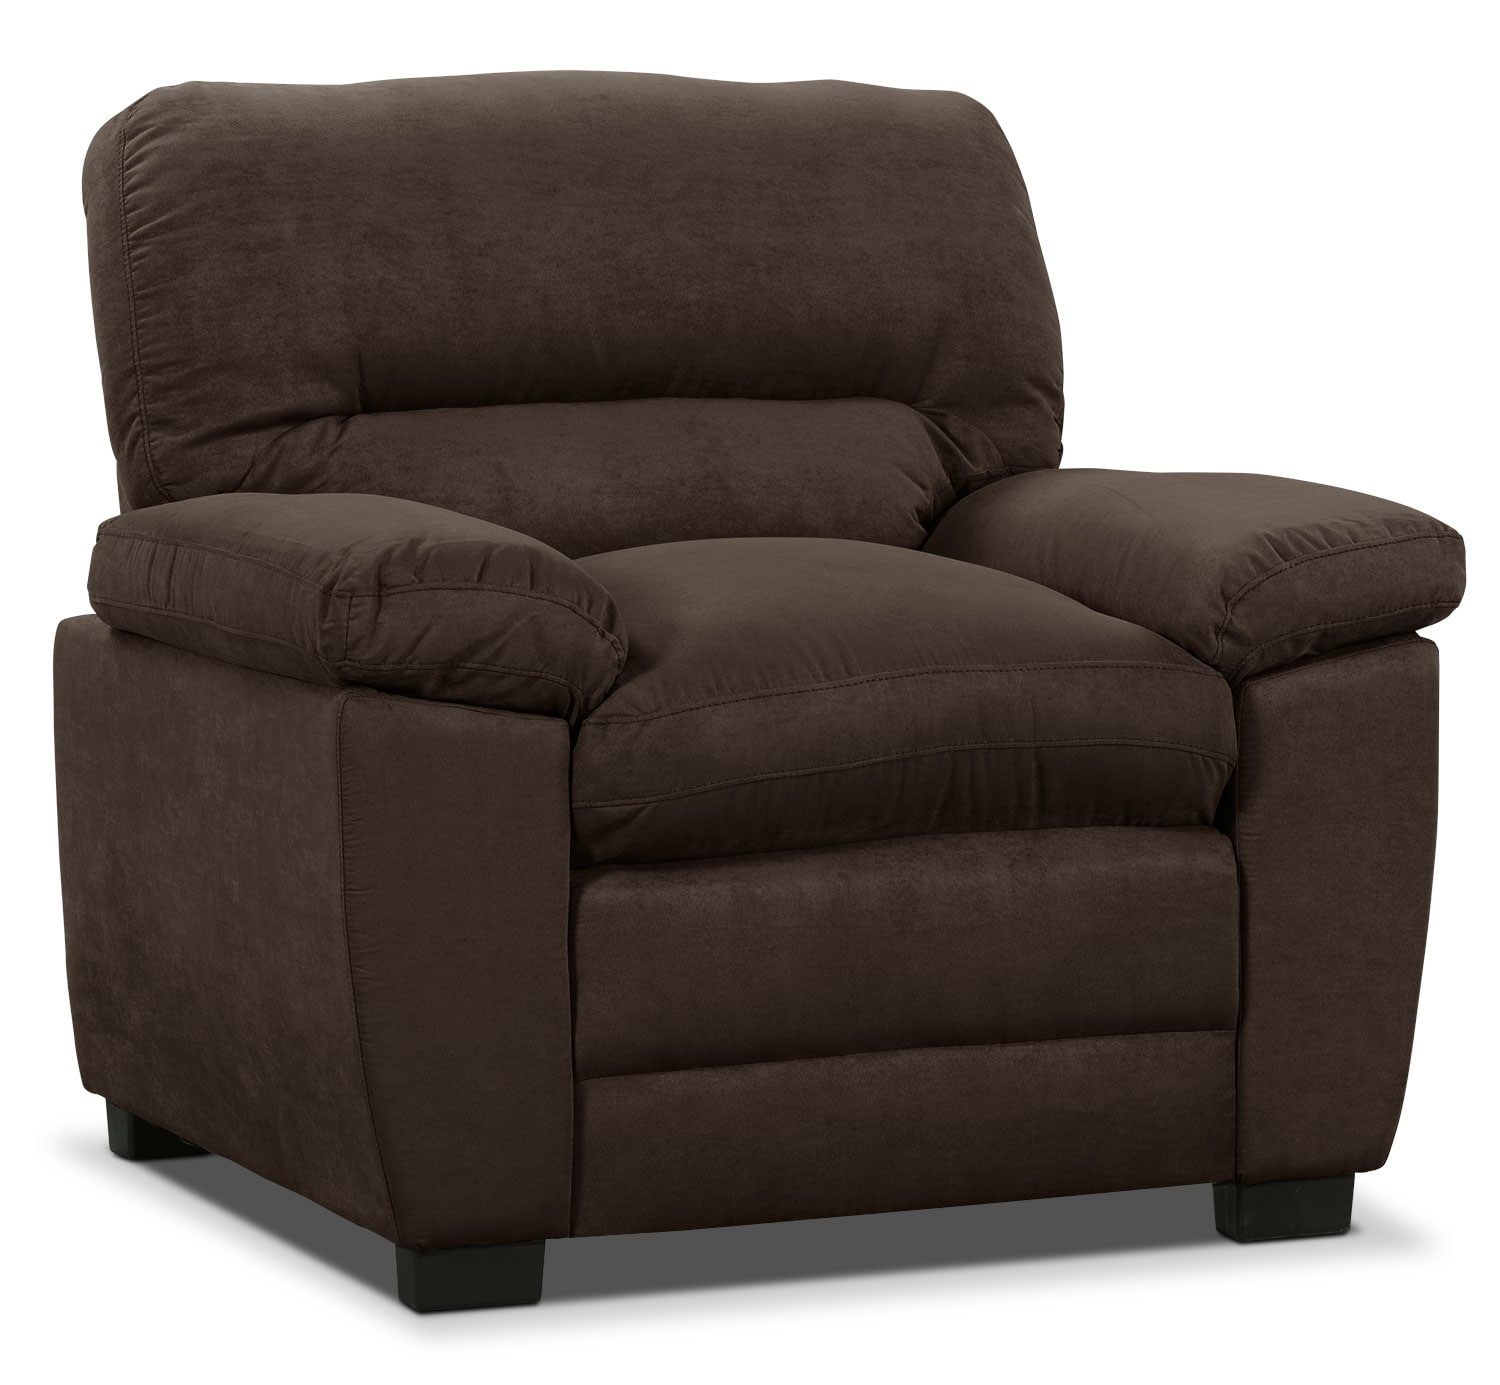 Peyton Microsuede Loveseat Chocolate The Brick